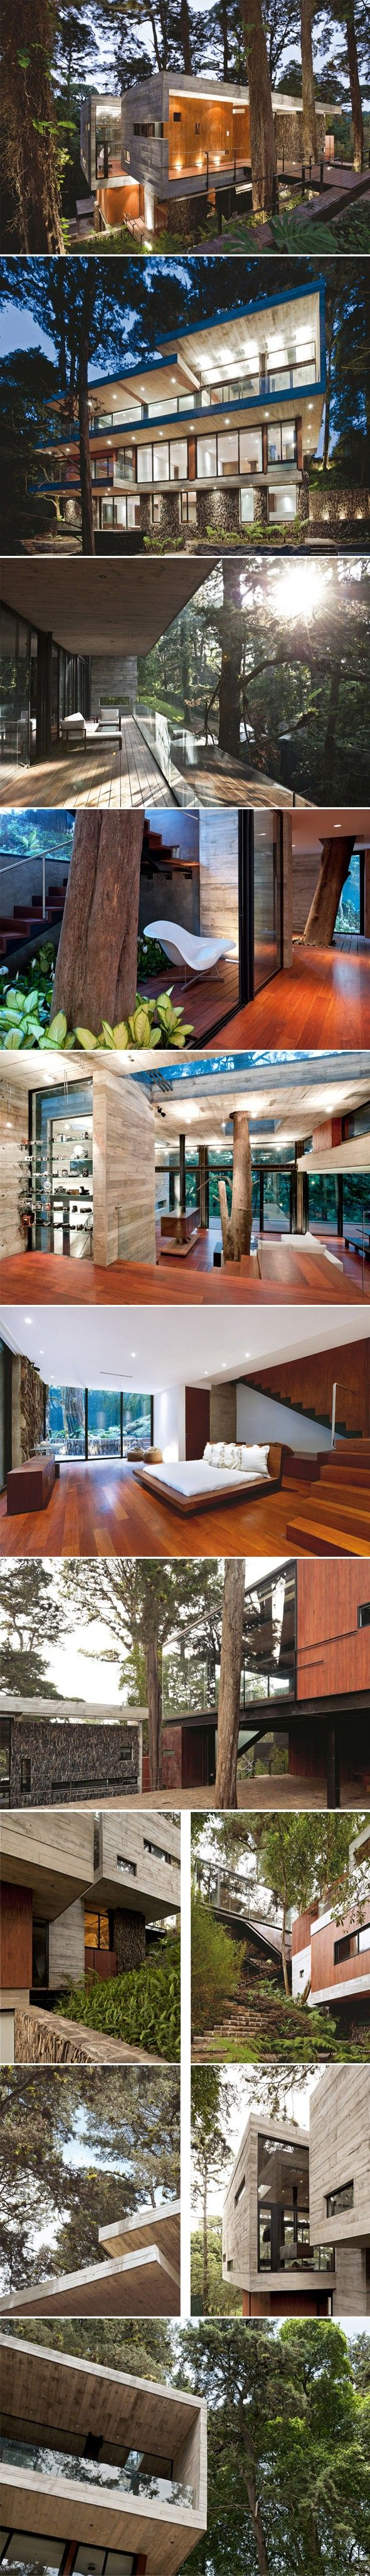 best home images on pinterest home ideas homes and arquitetura